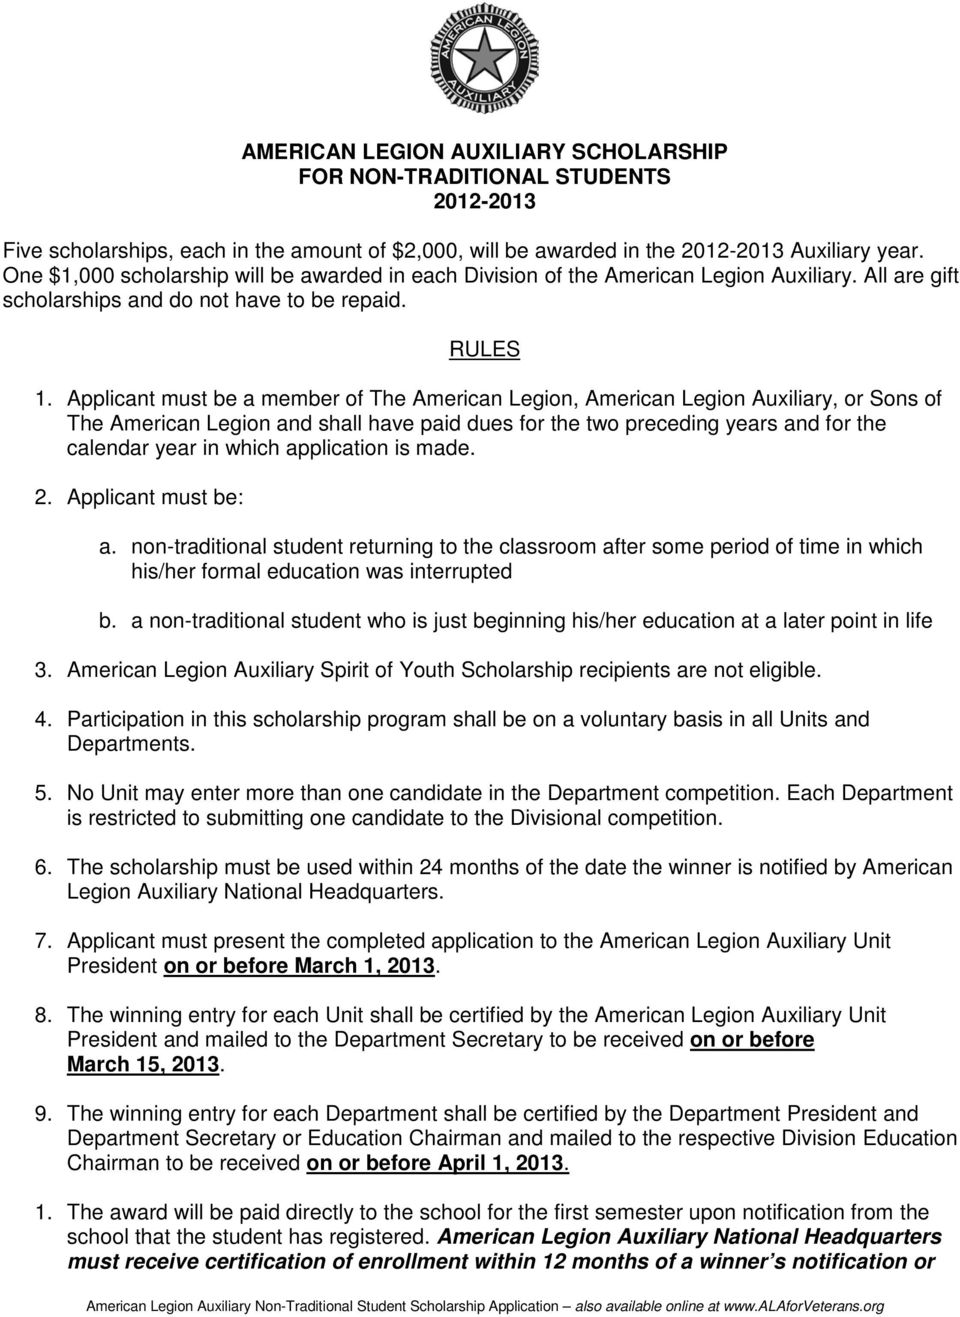 Applicant must be a member of The American Legion, American Legion Auxiliary, or Sons of The American Legion and shall have paid dues for the two preceding years and for the calendar year in which